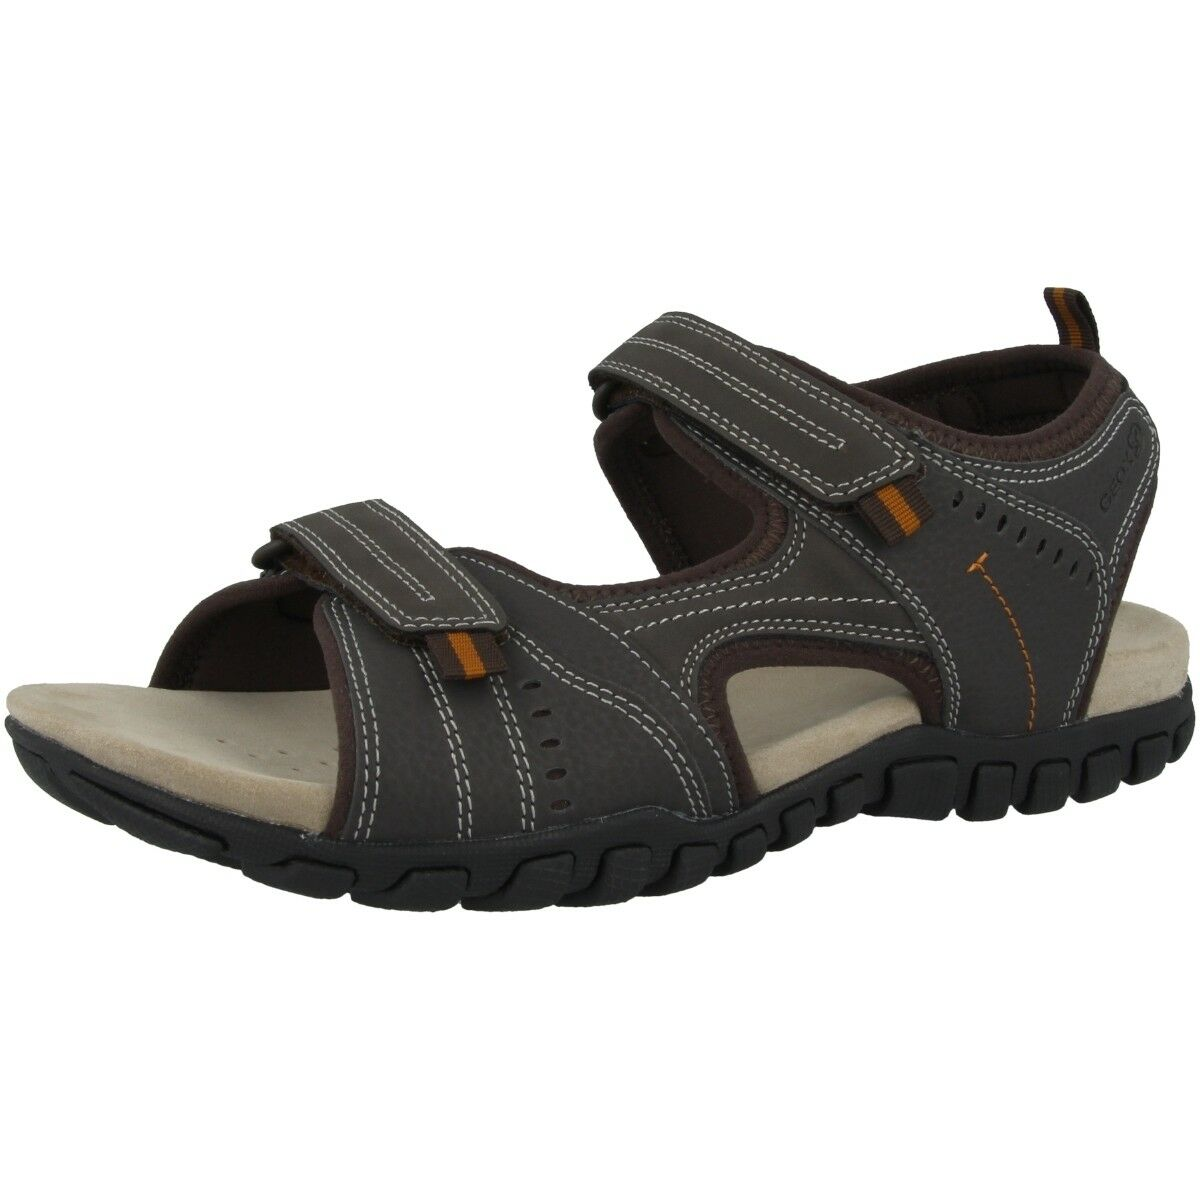 Geox U MITO A Chaussures Homme Sandales Trekking Sandale Coffee u92q2a0bc50c6024